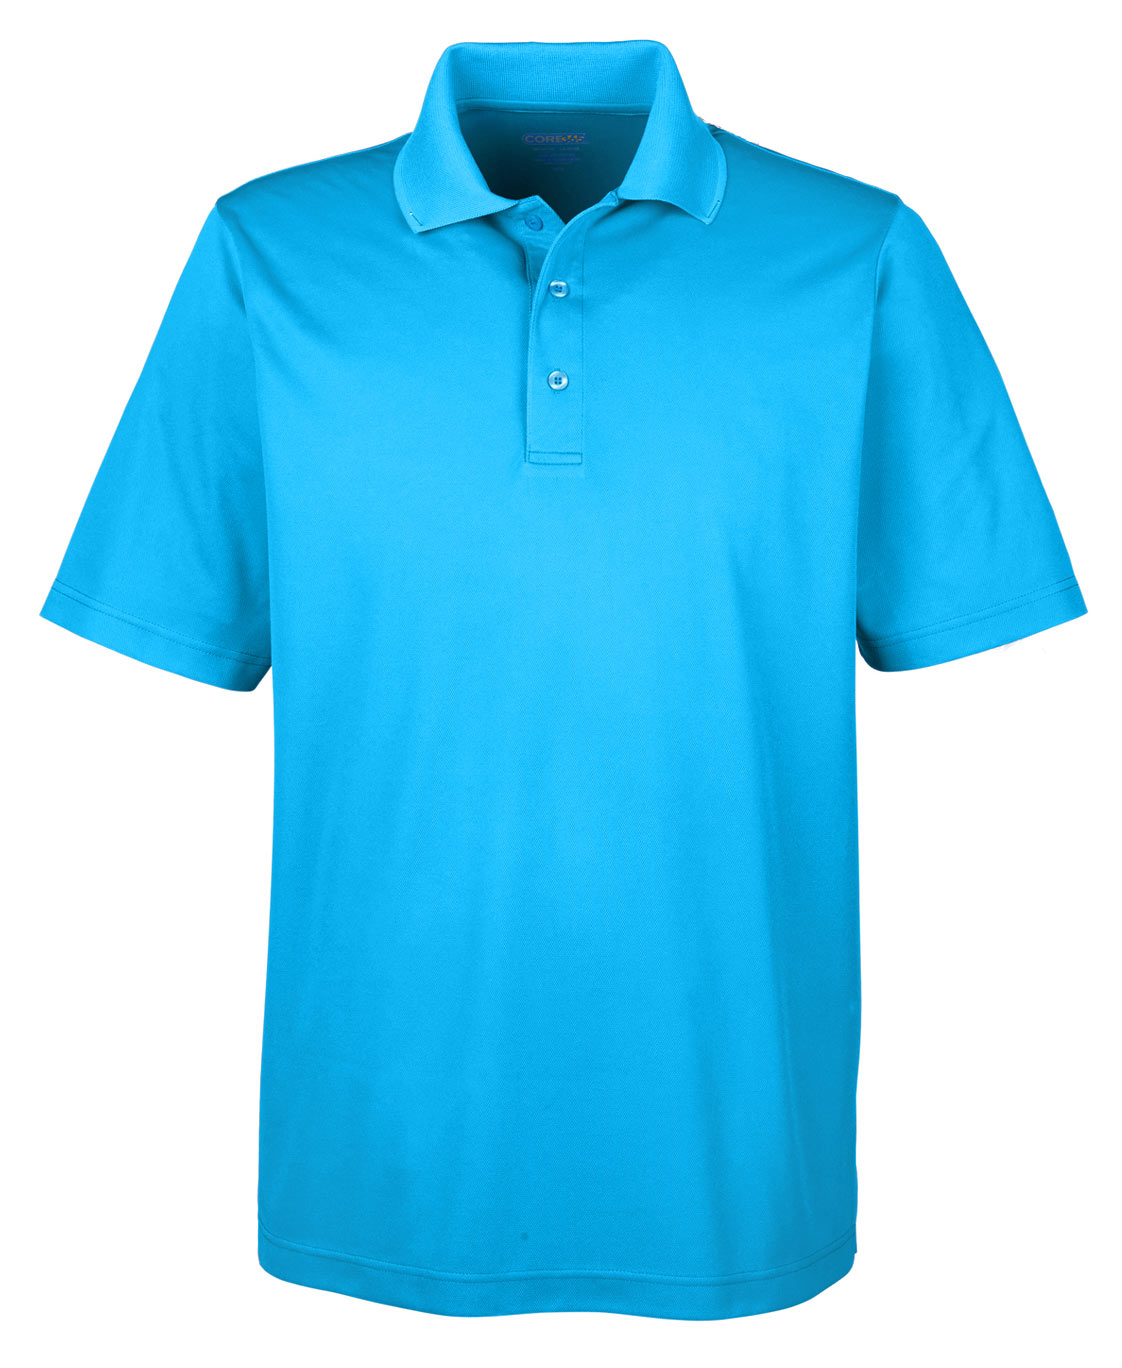 Mens Origin Performance Pique Polo